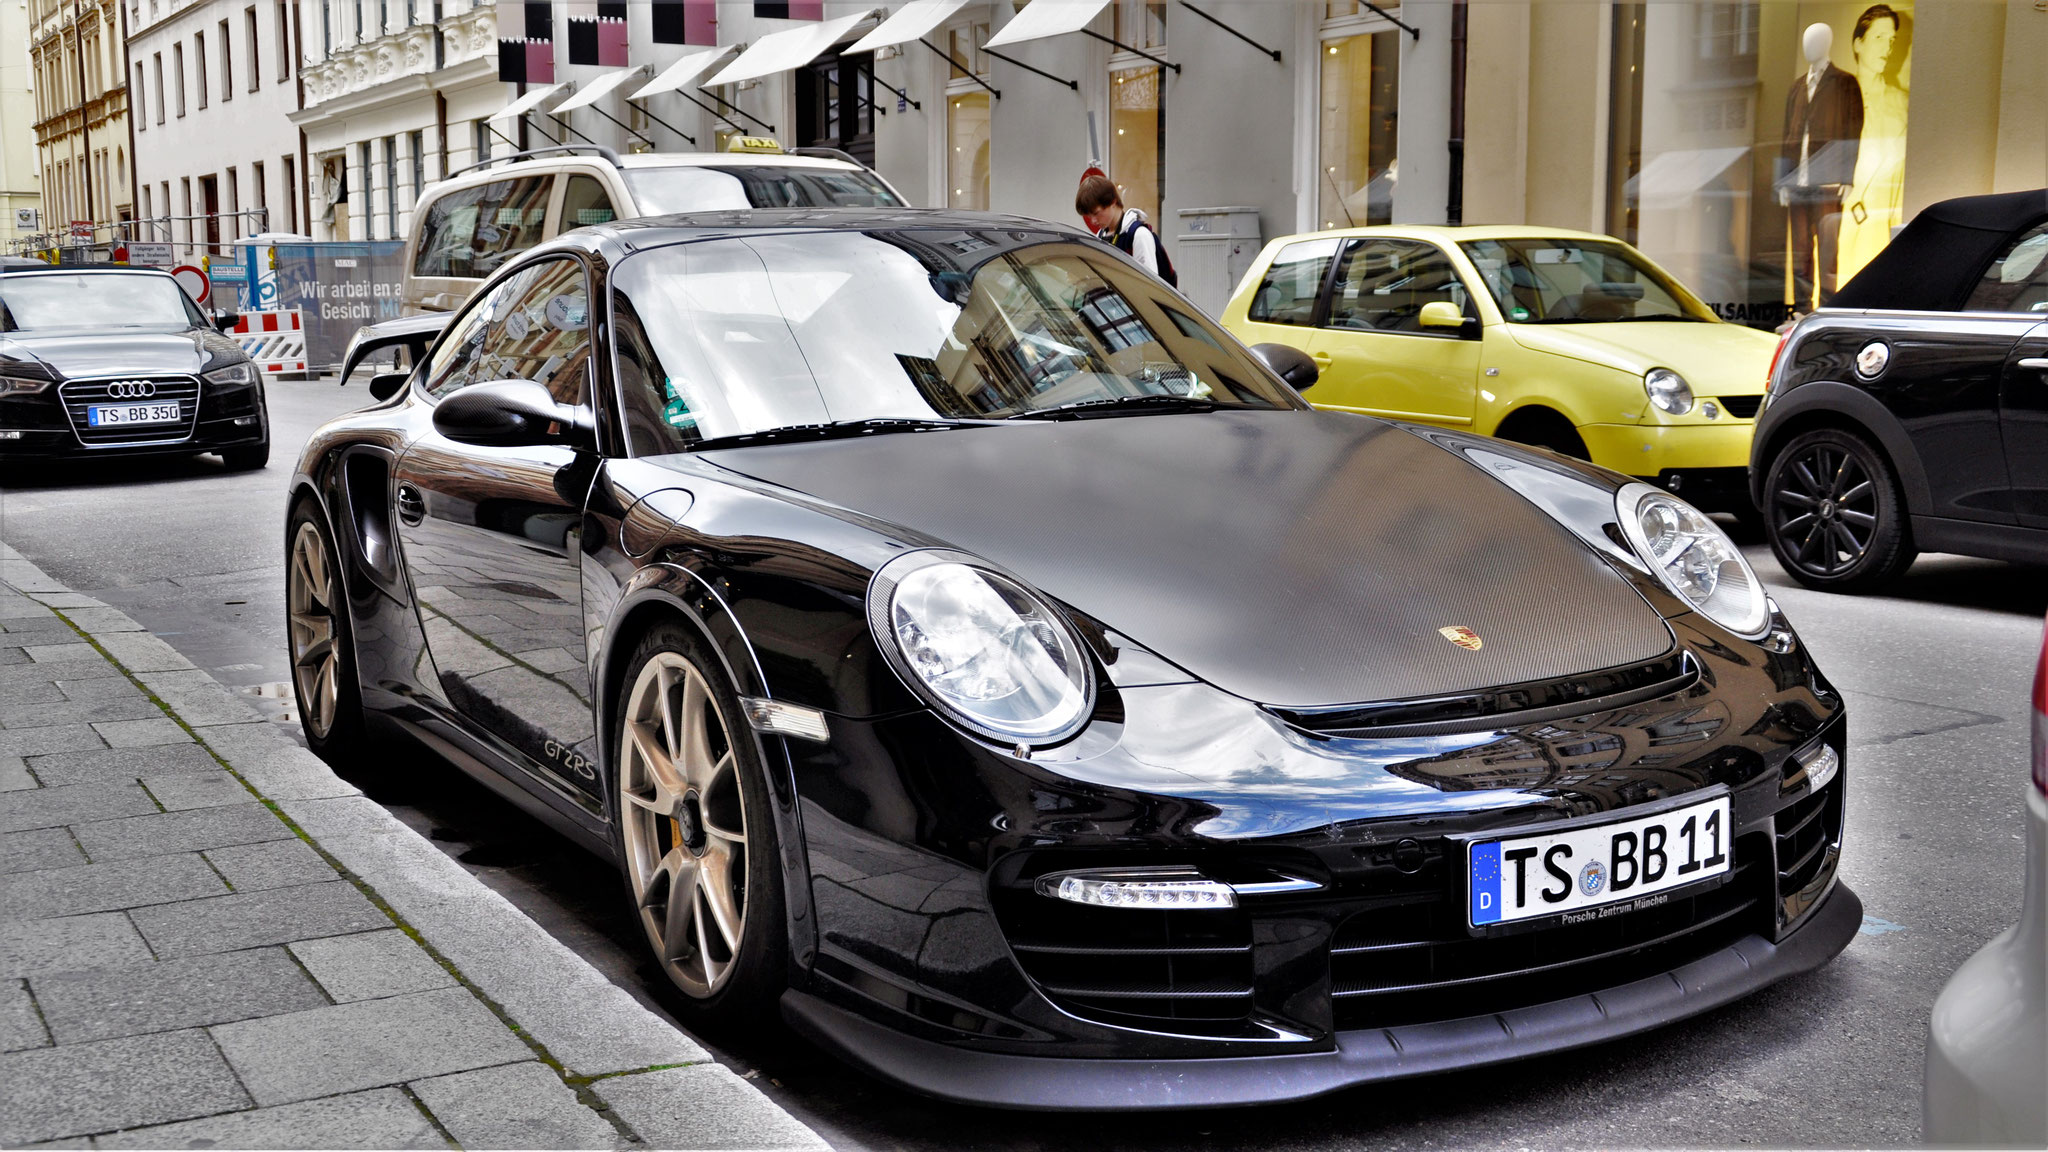 Porsche 911 997 GT2 RS - TS-BB-11